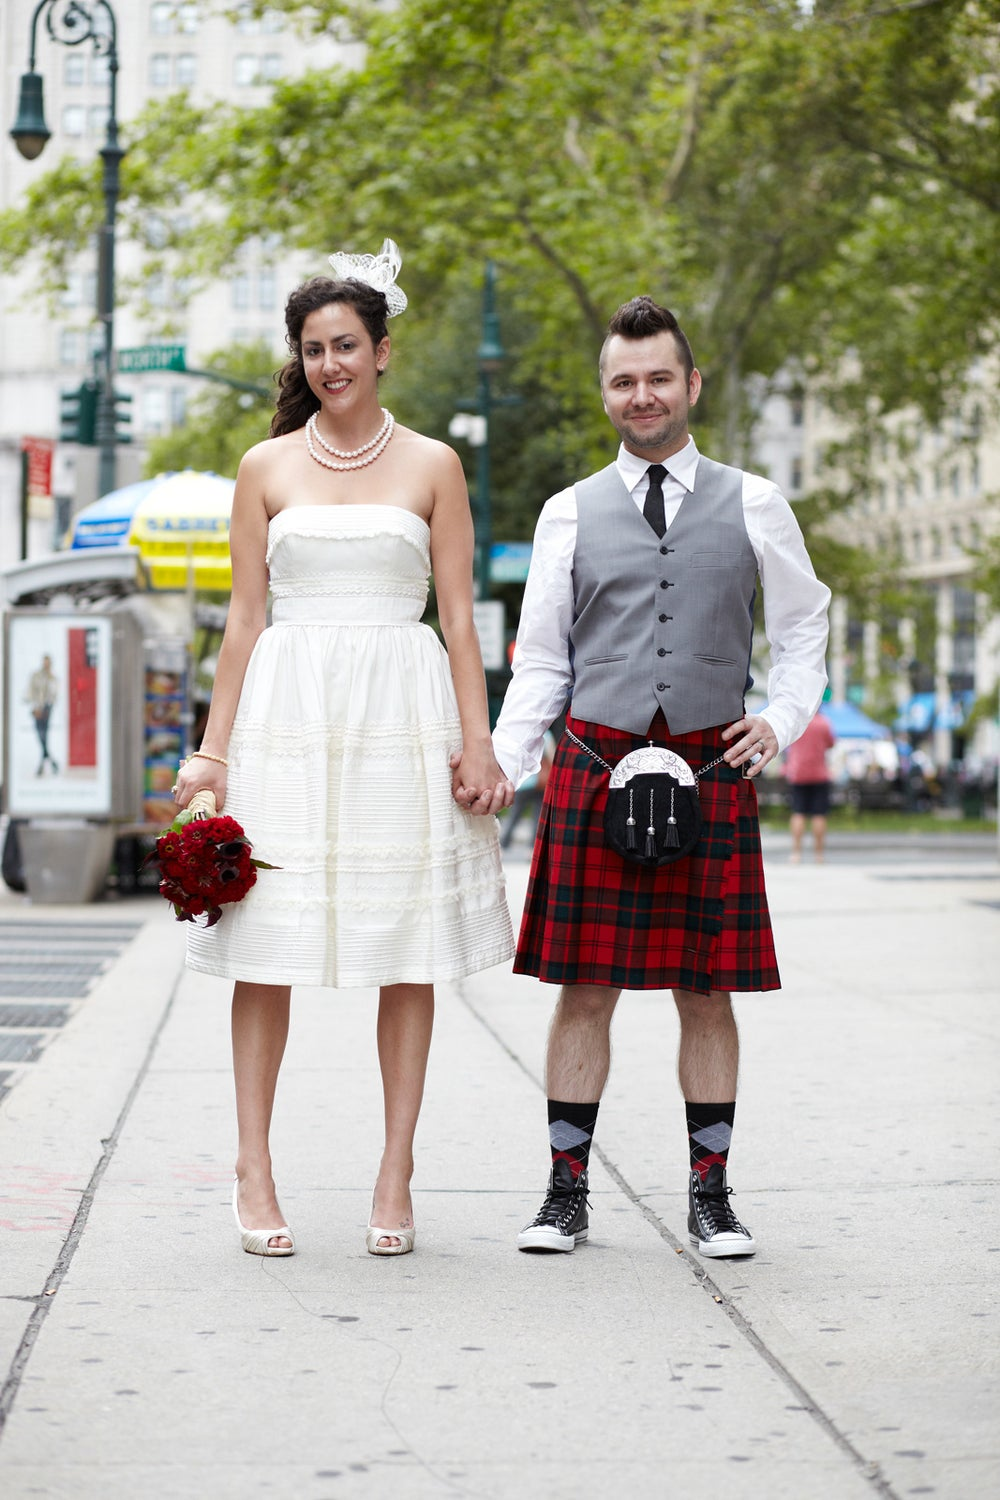 Leah Taylor from Flavorpill and her new hubby, actor Alex Dunbar.